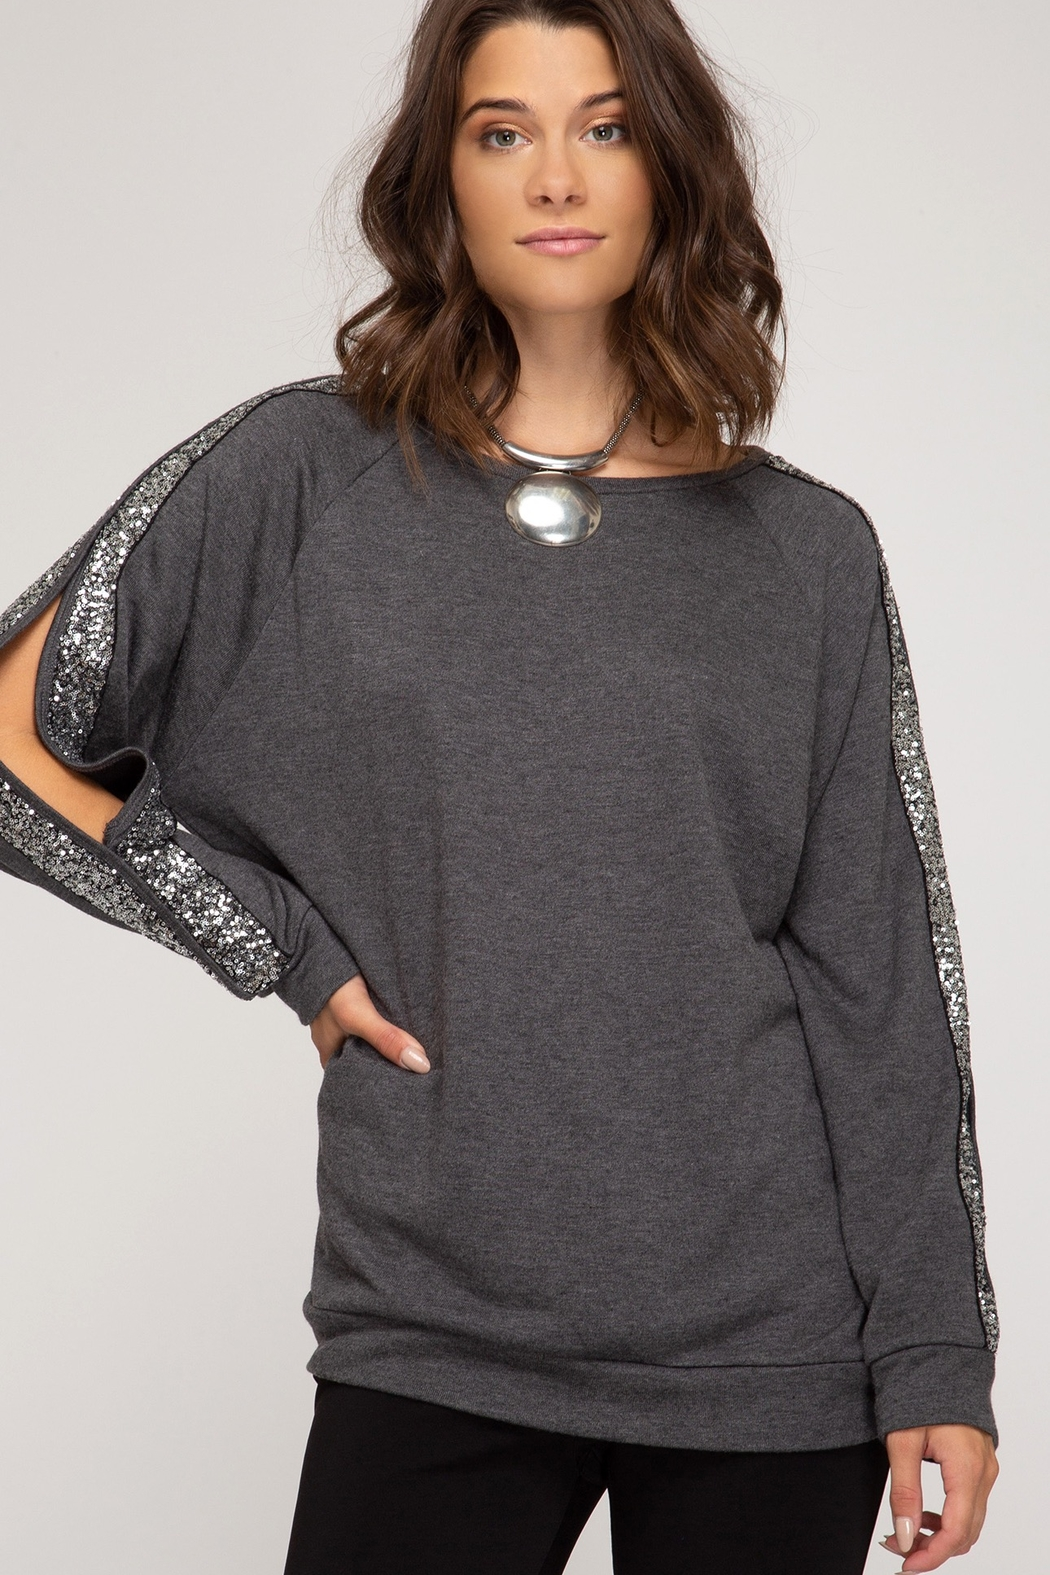 She and Sky LONG SLEEVE KNIT TOP WITH SEQUIN TRIM AND SLEEVE SLIT DETAILS - Front Cropped Image